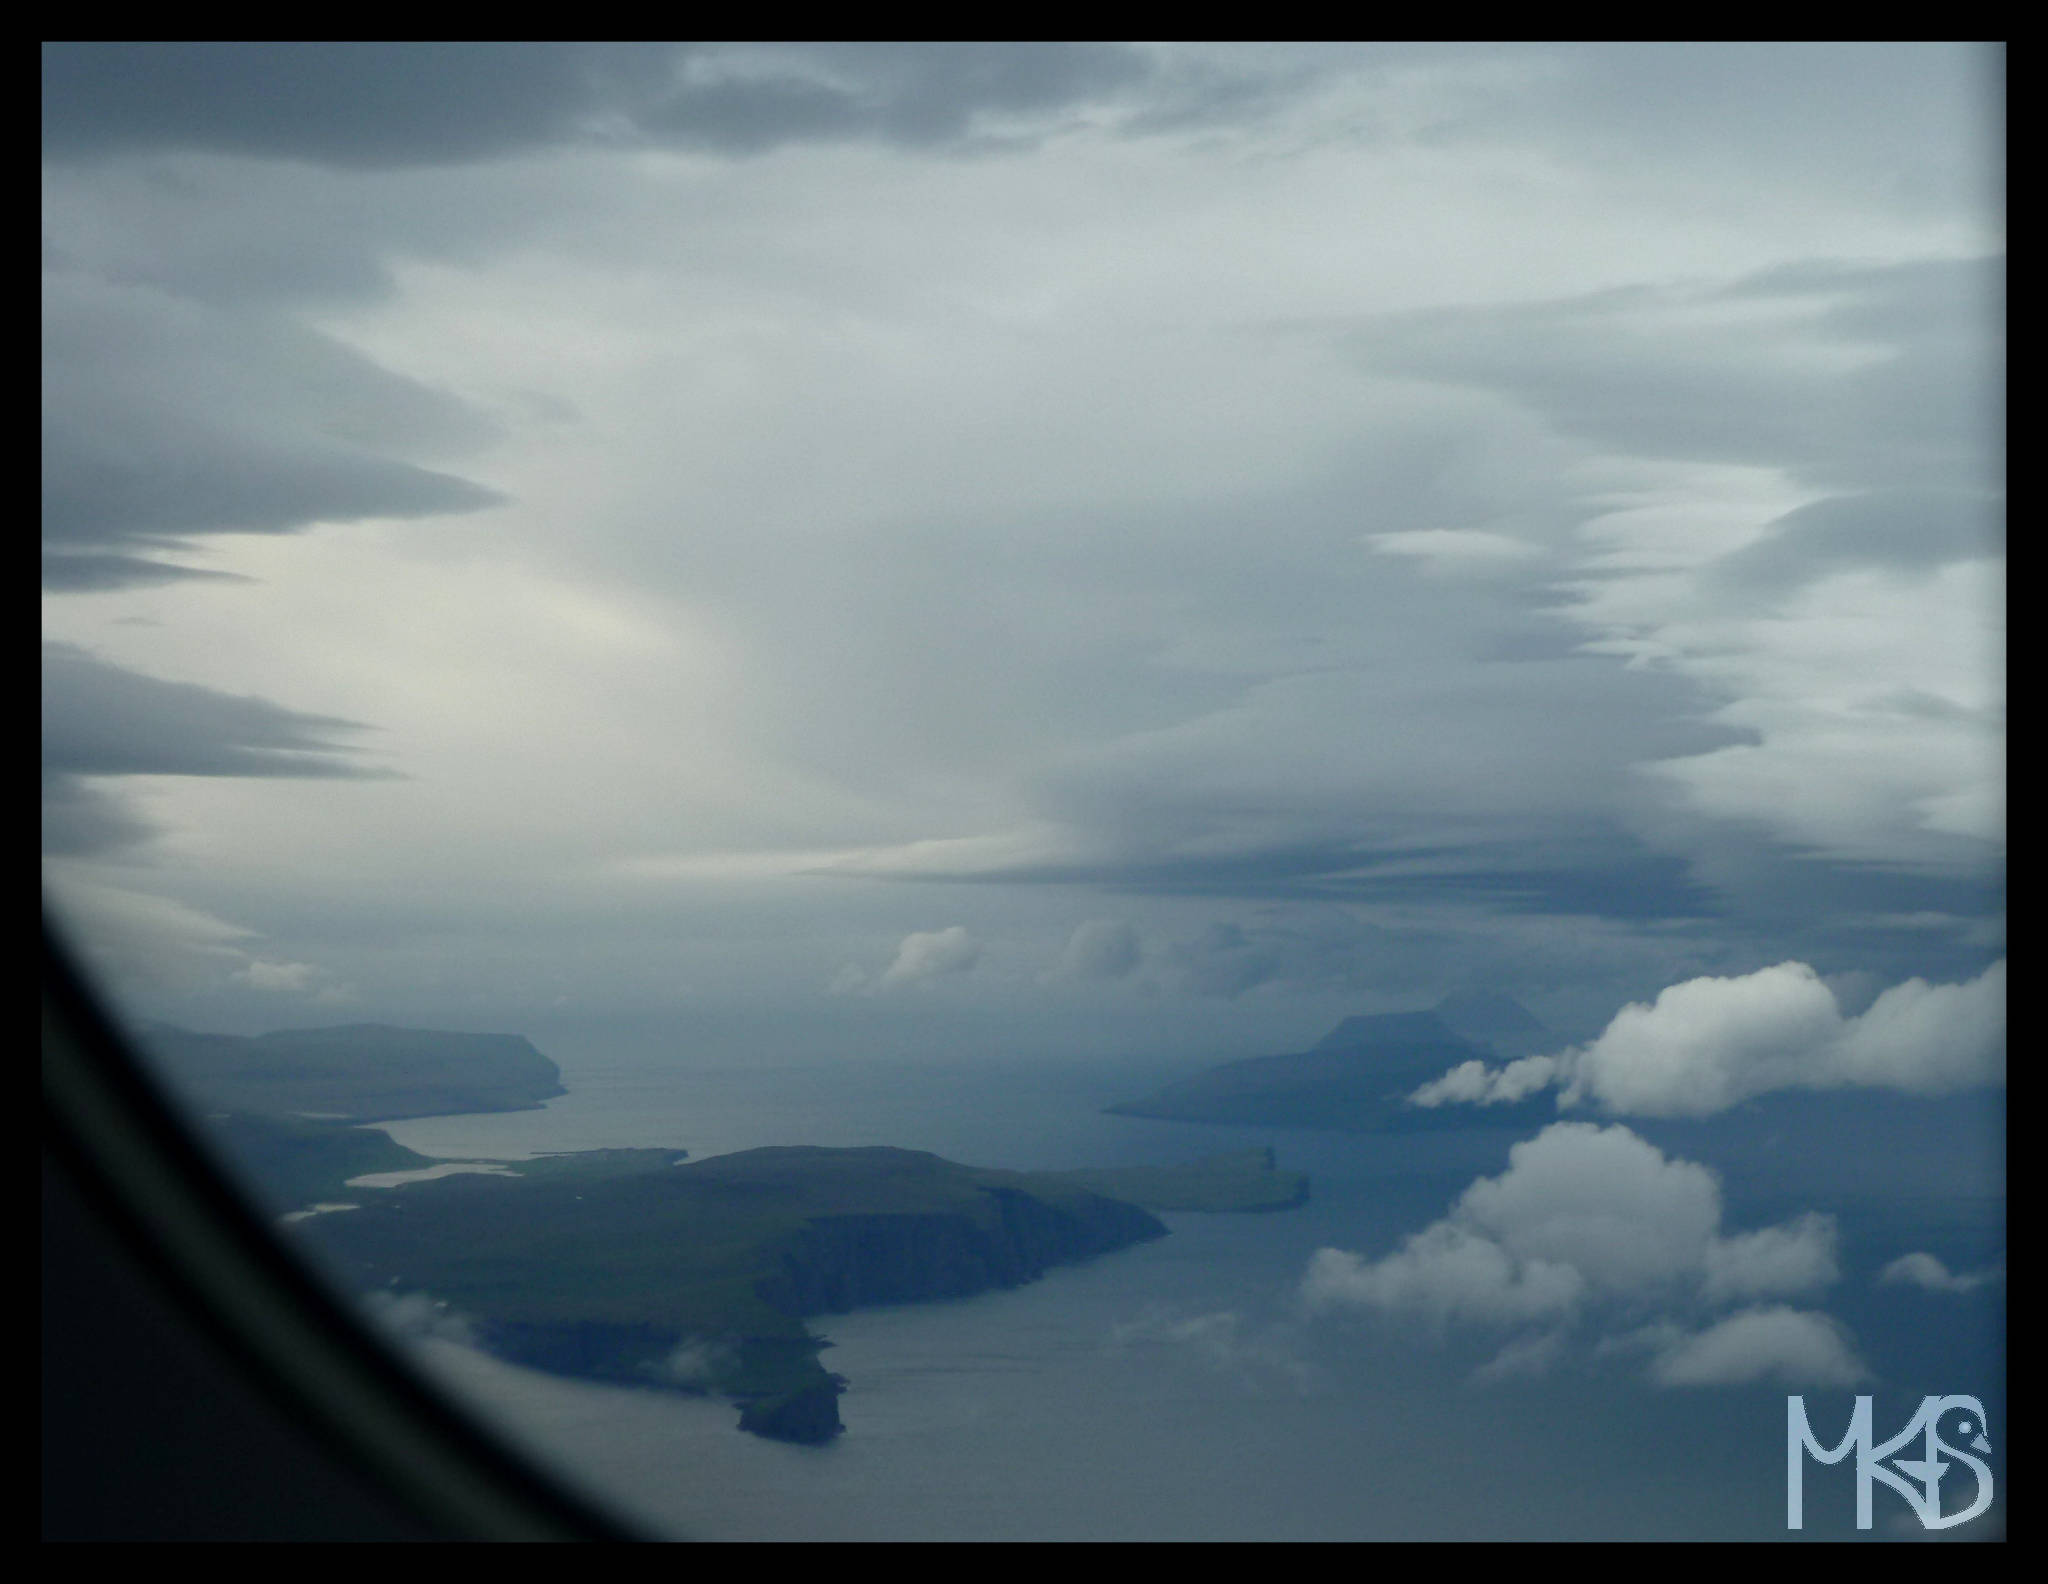 Faroe Islands from the airplane